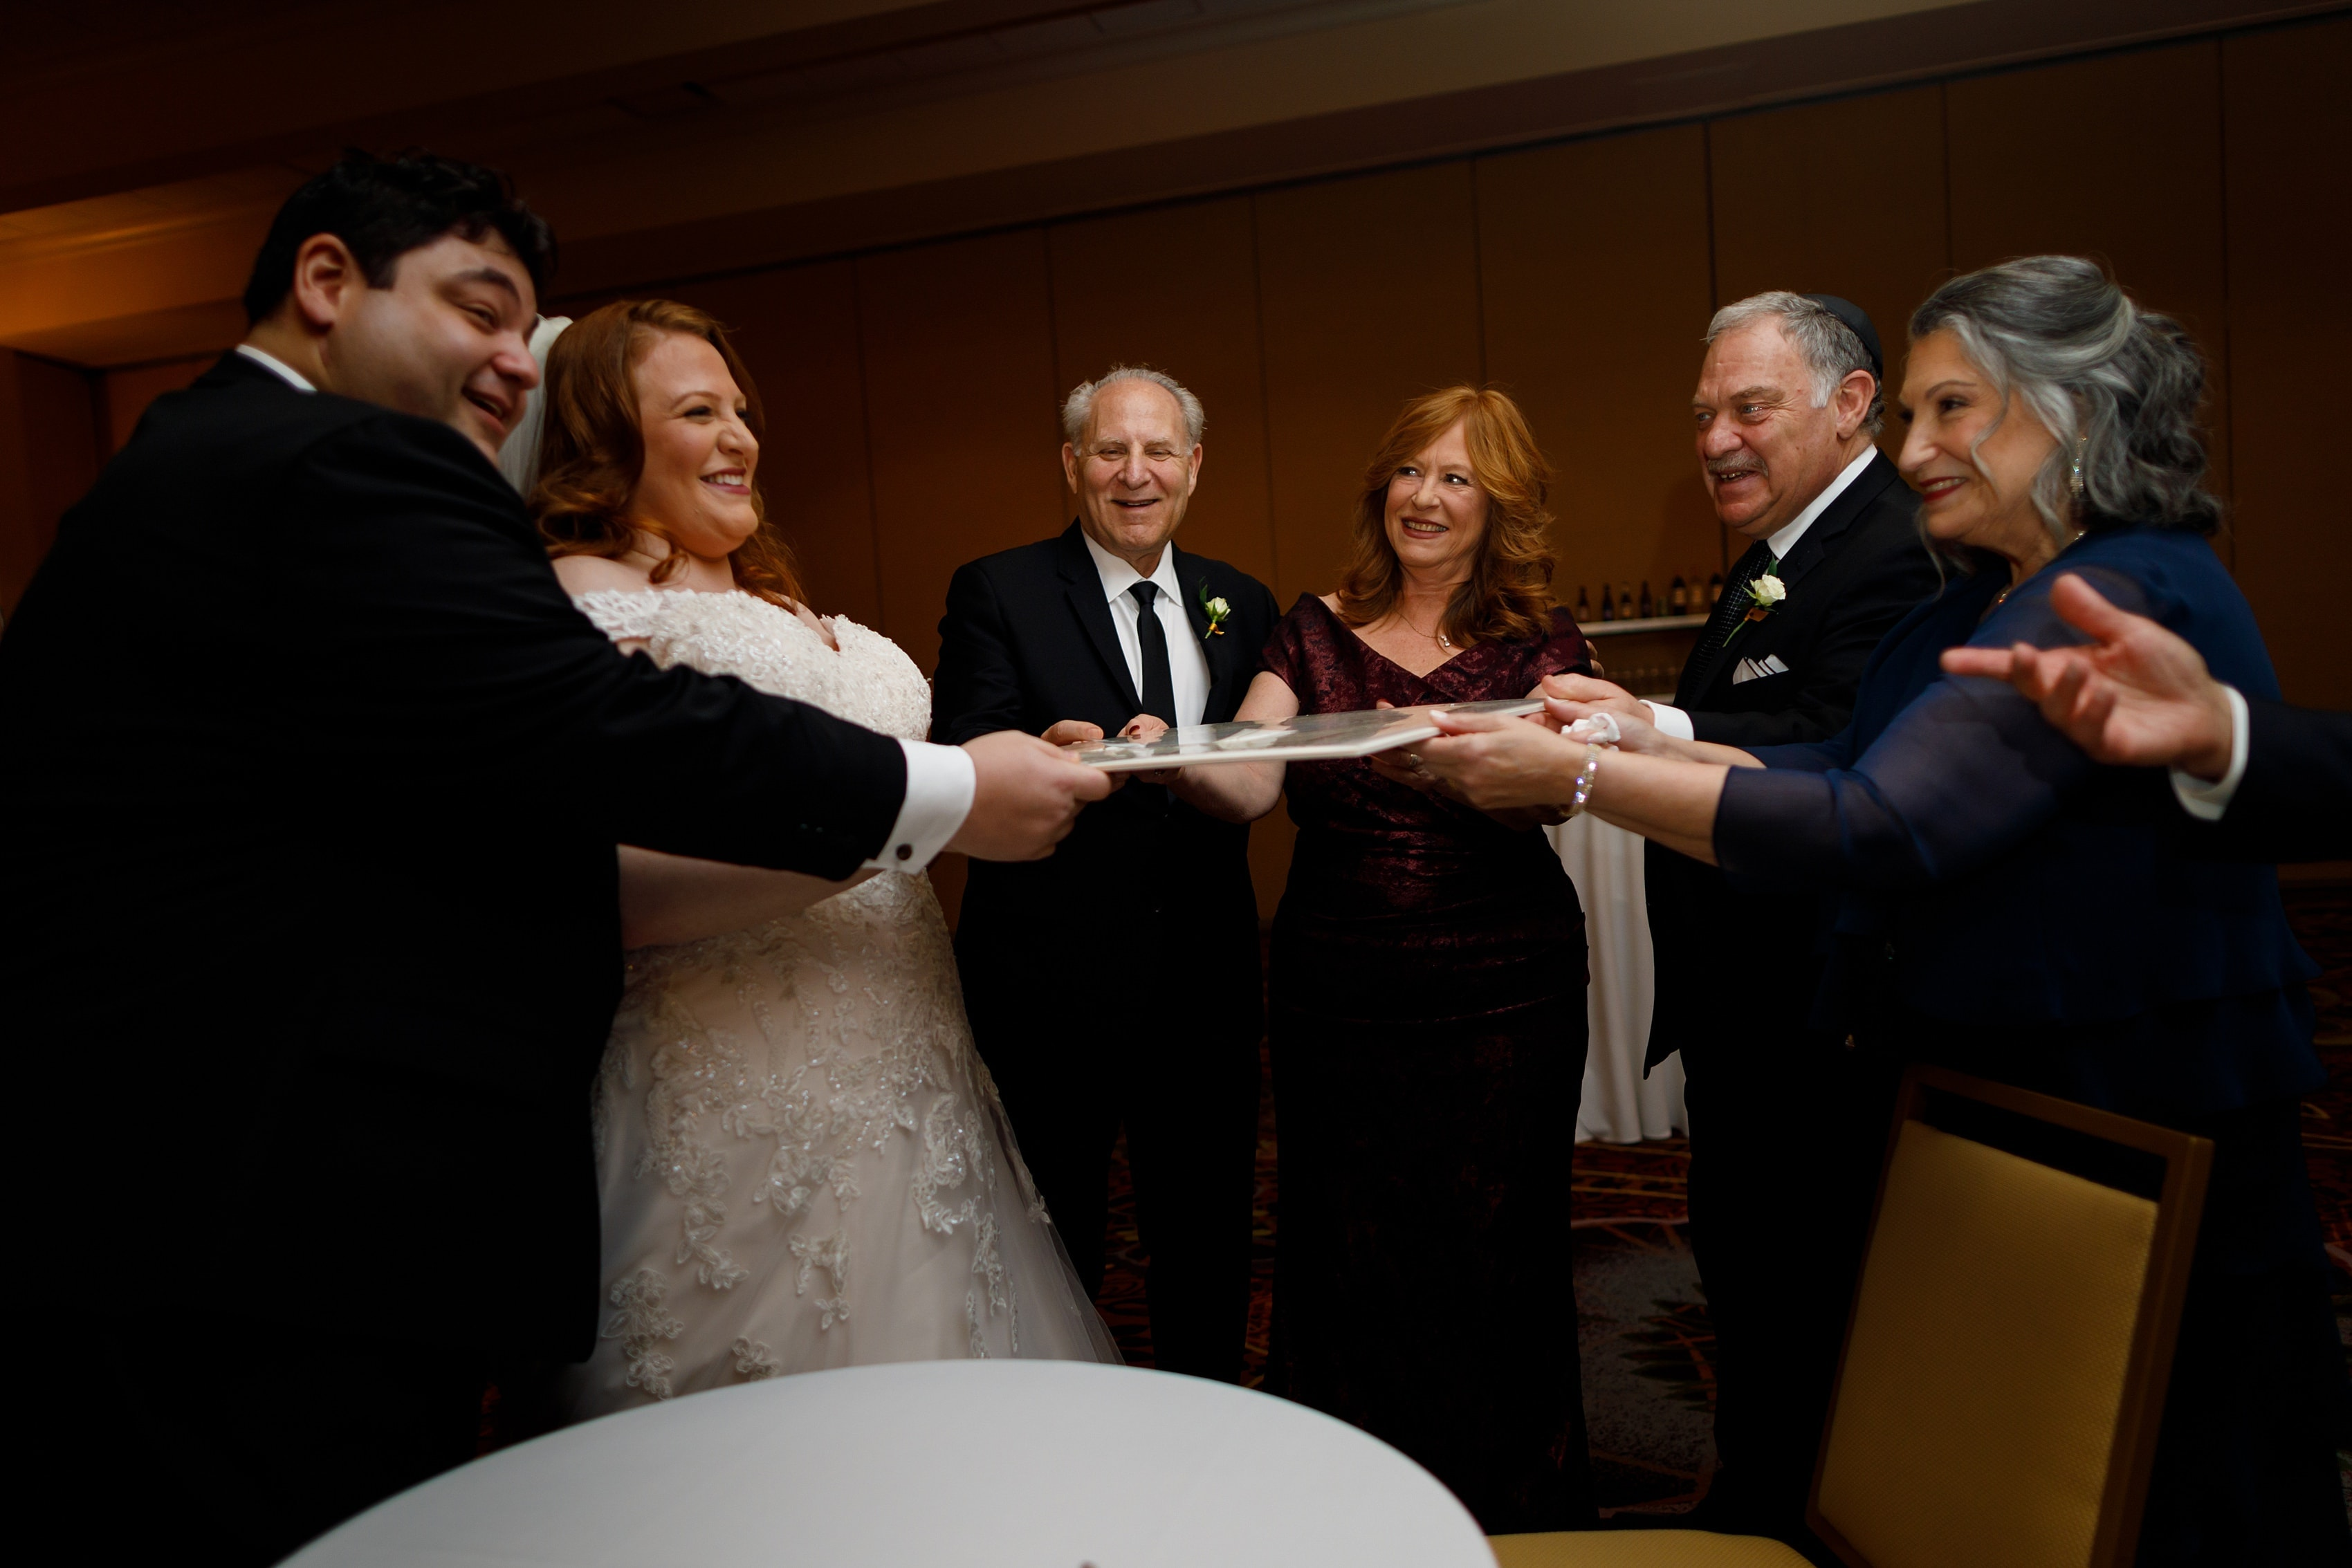 bride and groom with parents at ketubah signing at Lincolnshire Marriott Resort